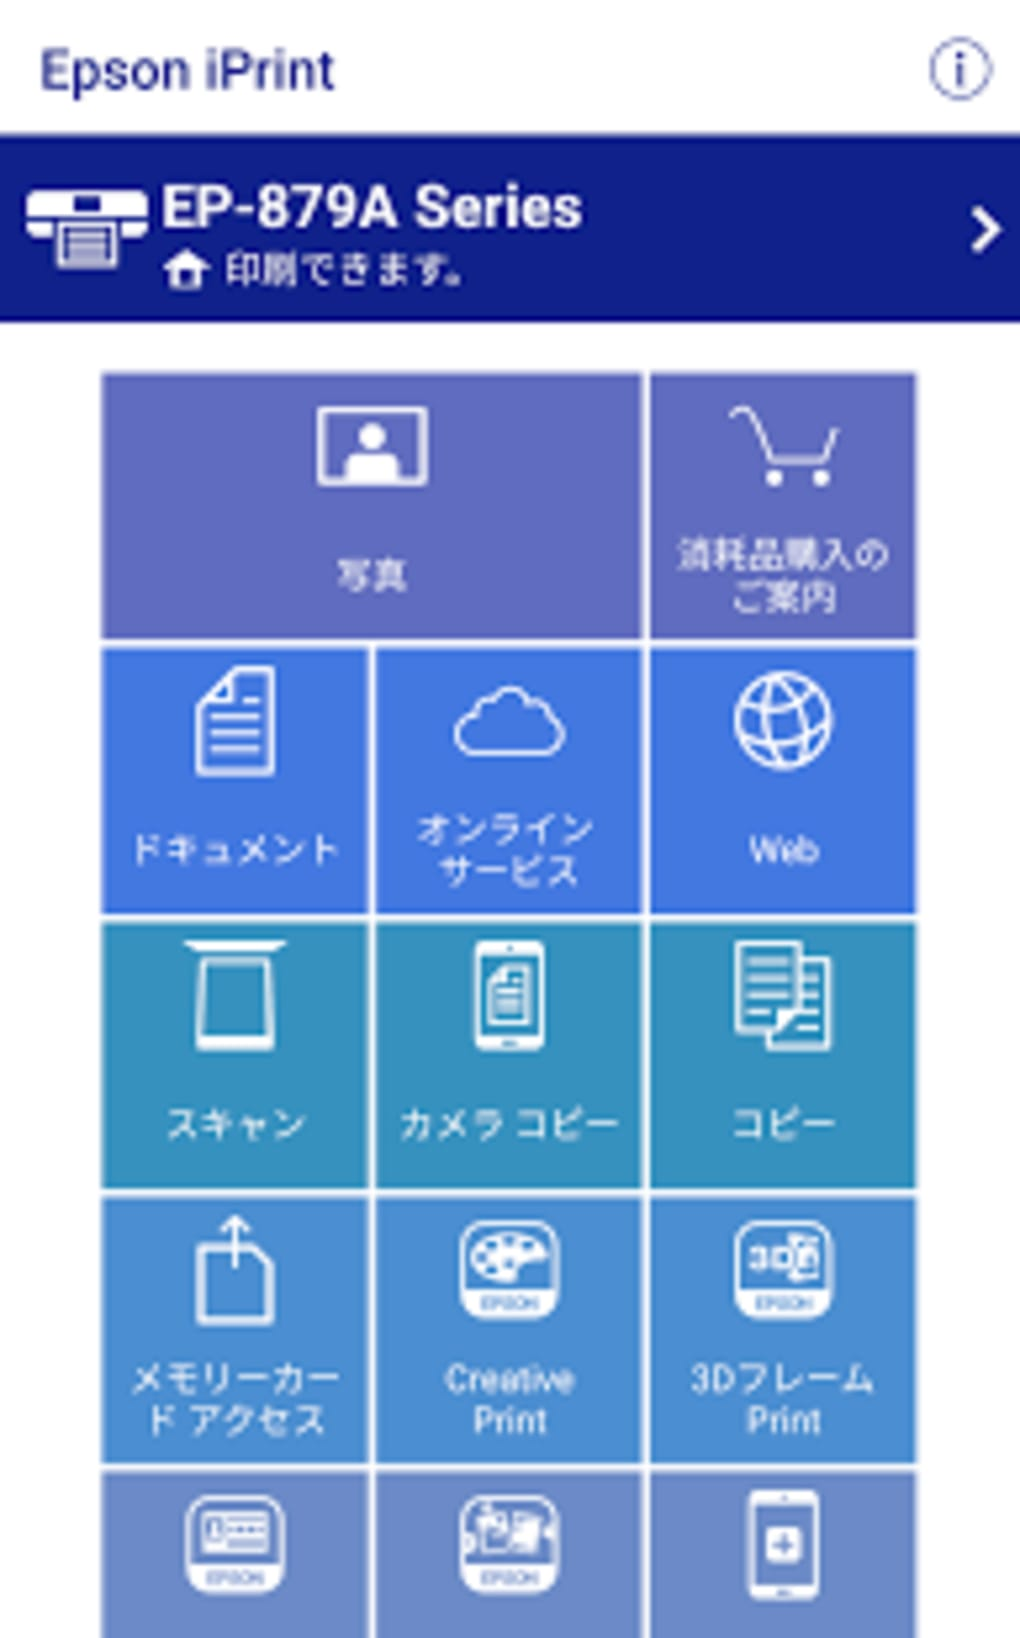 Epson iPrint for Android - Download